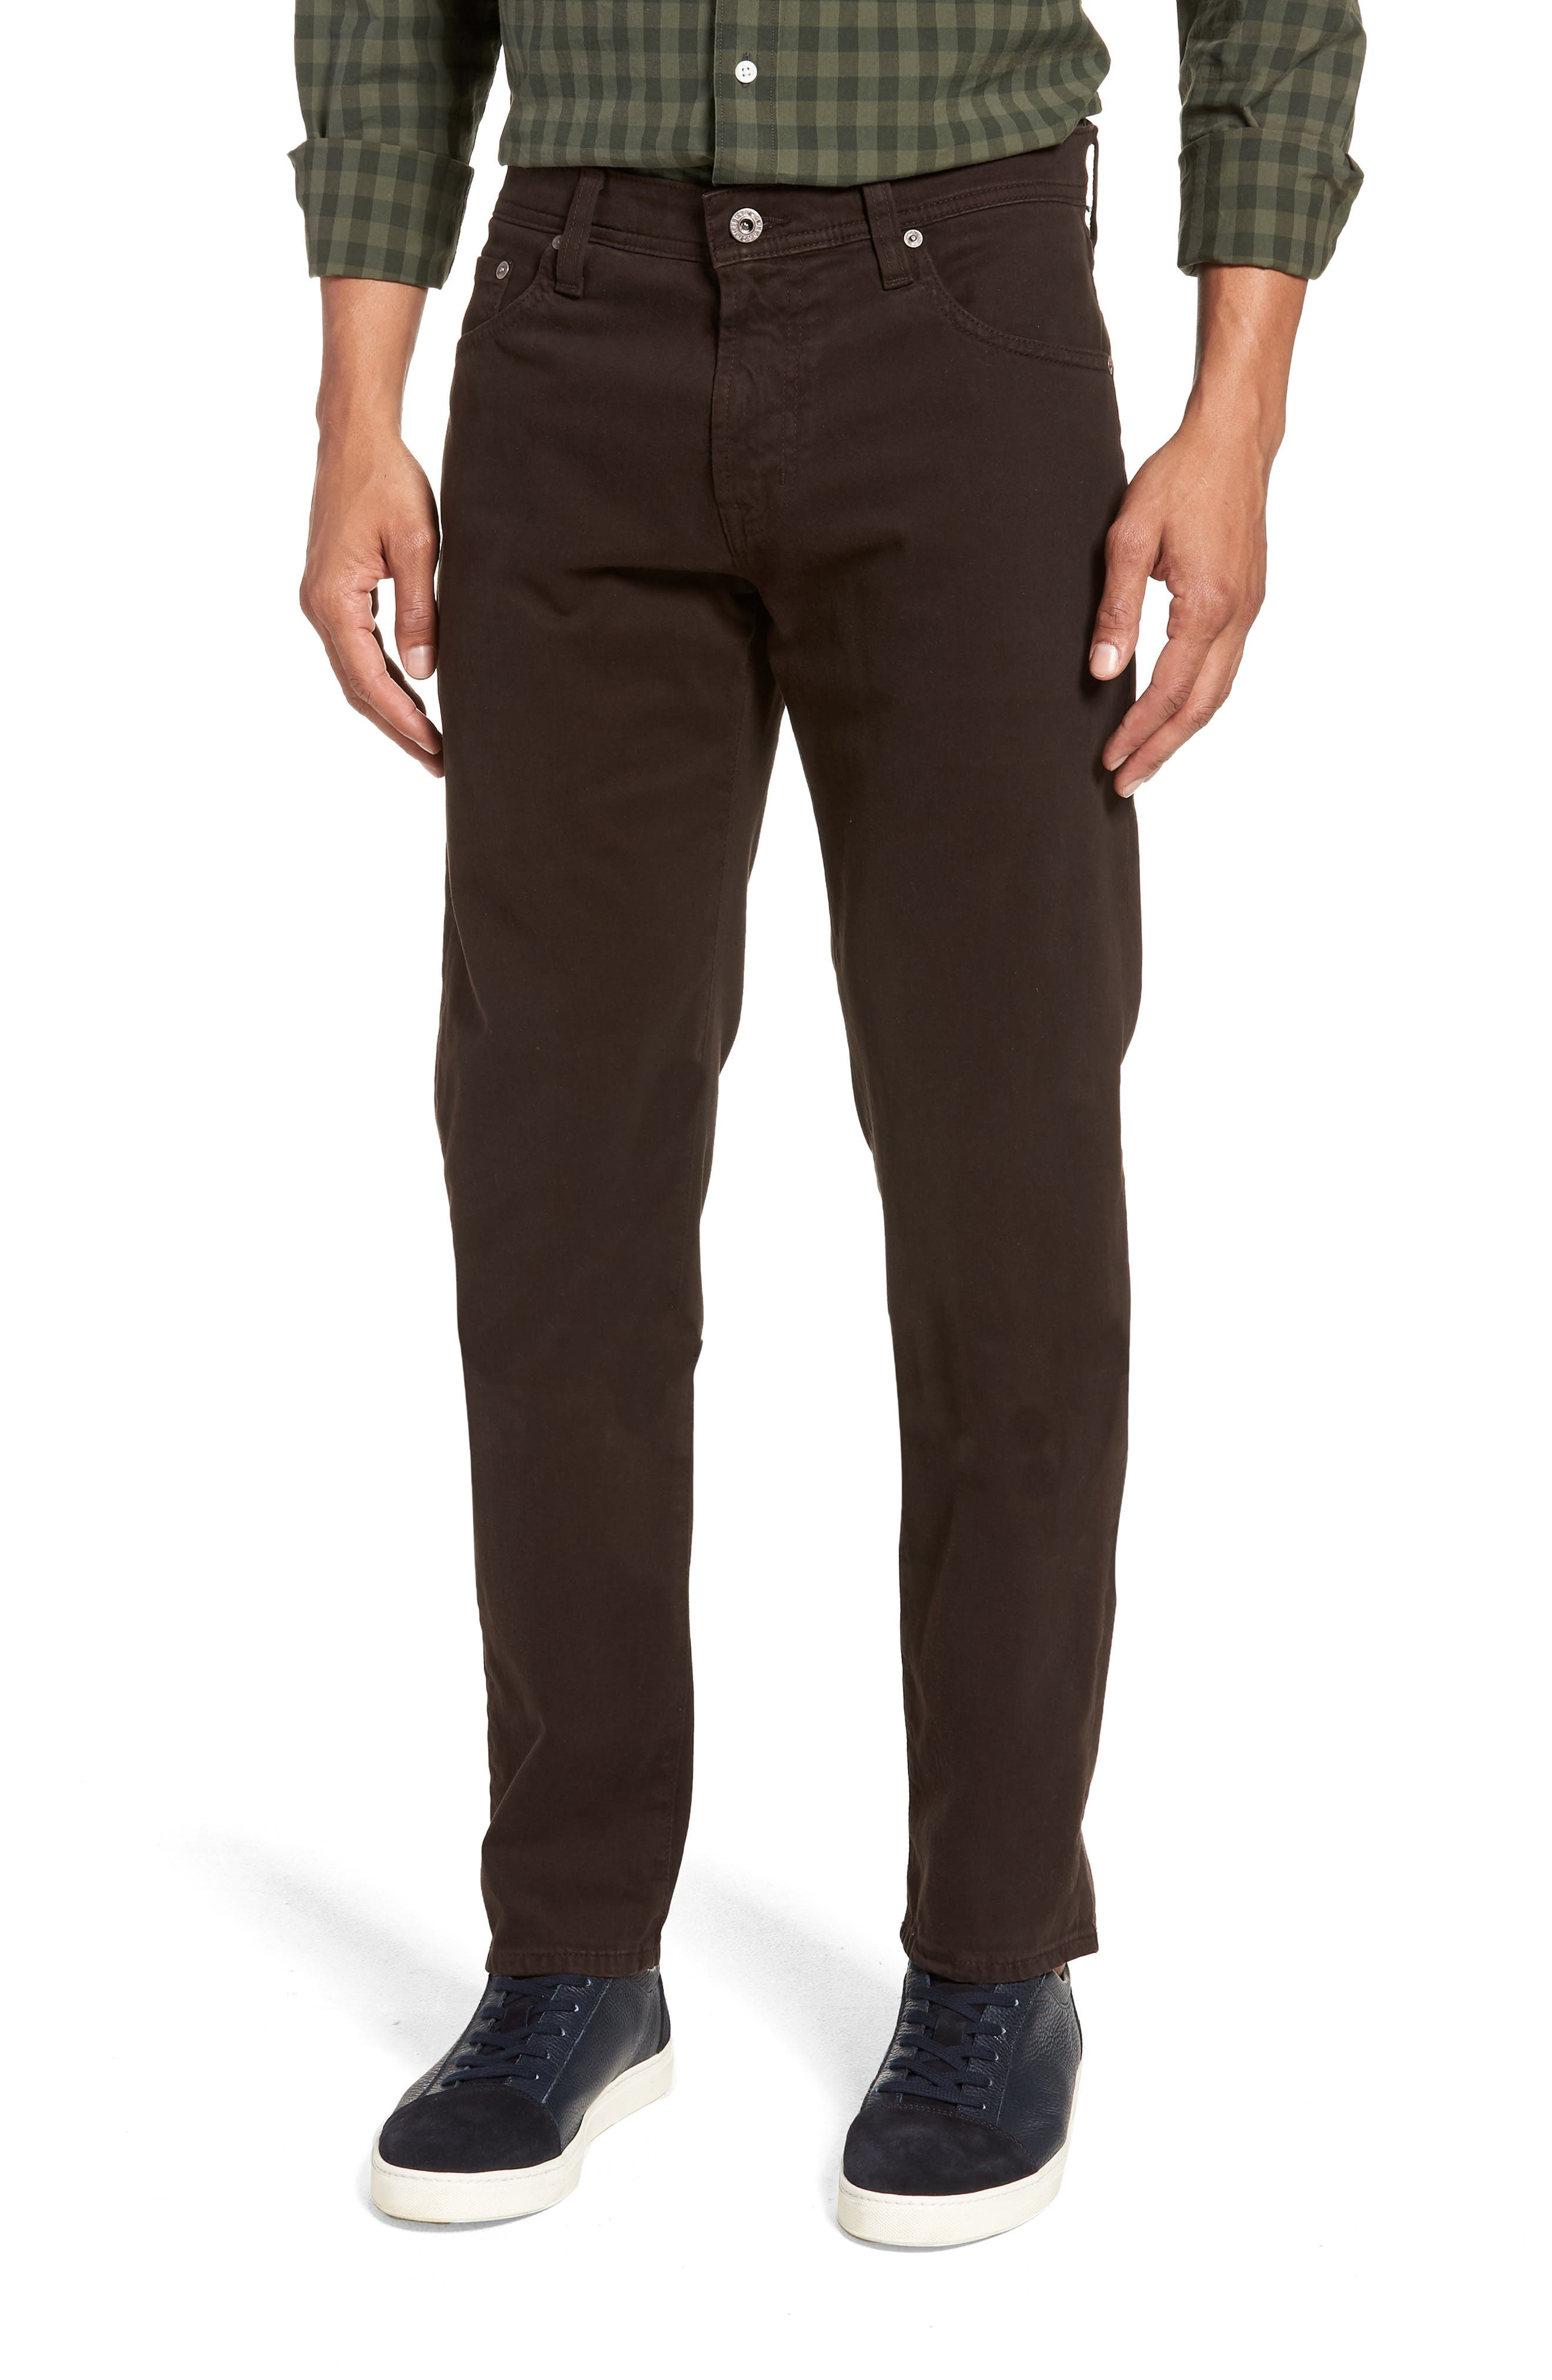 Tellis SUD Modern Slim Stretch Twill Pants,                         Main,                         color, SHUTTER BROWN